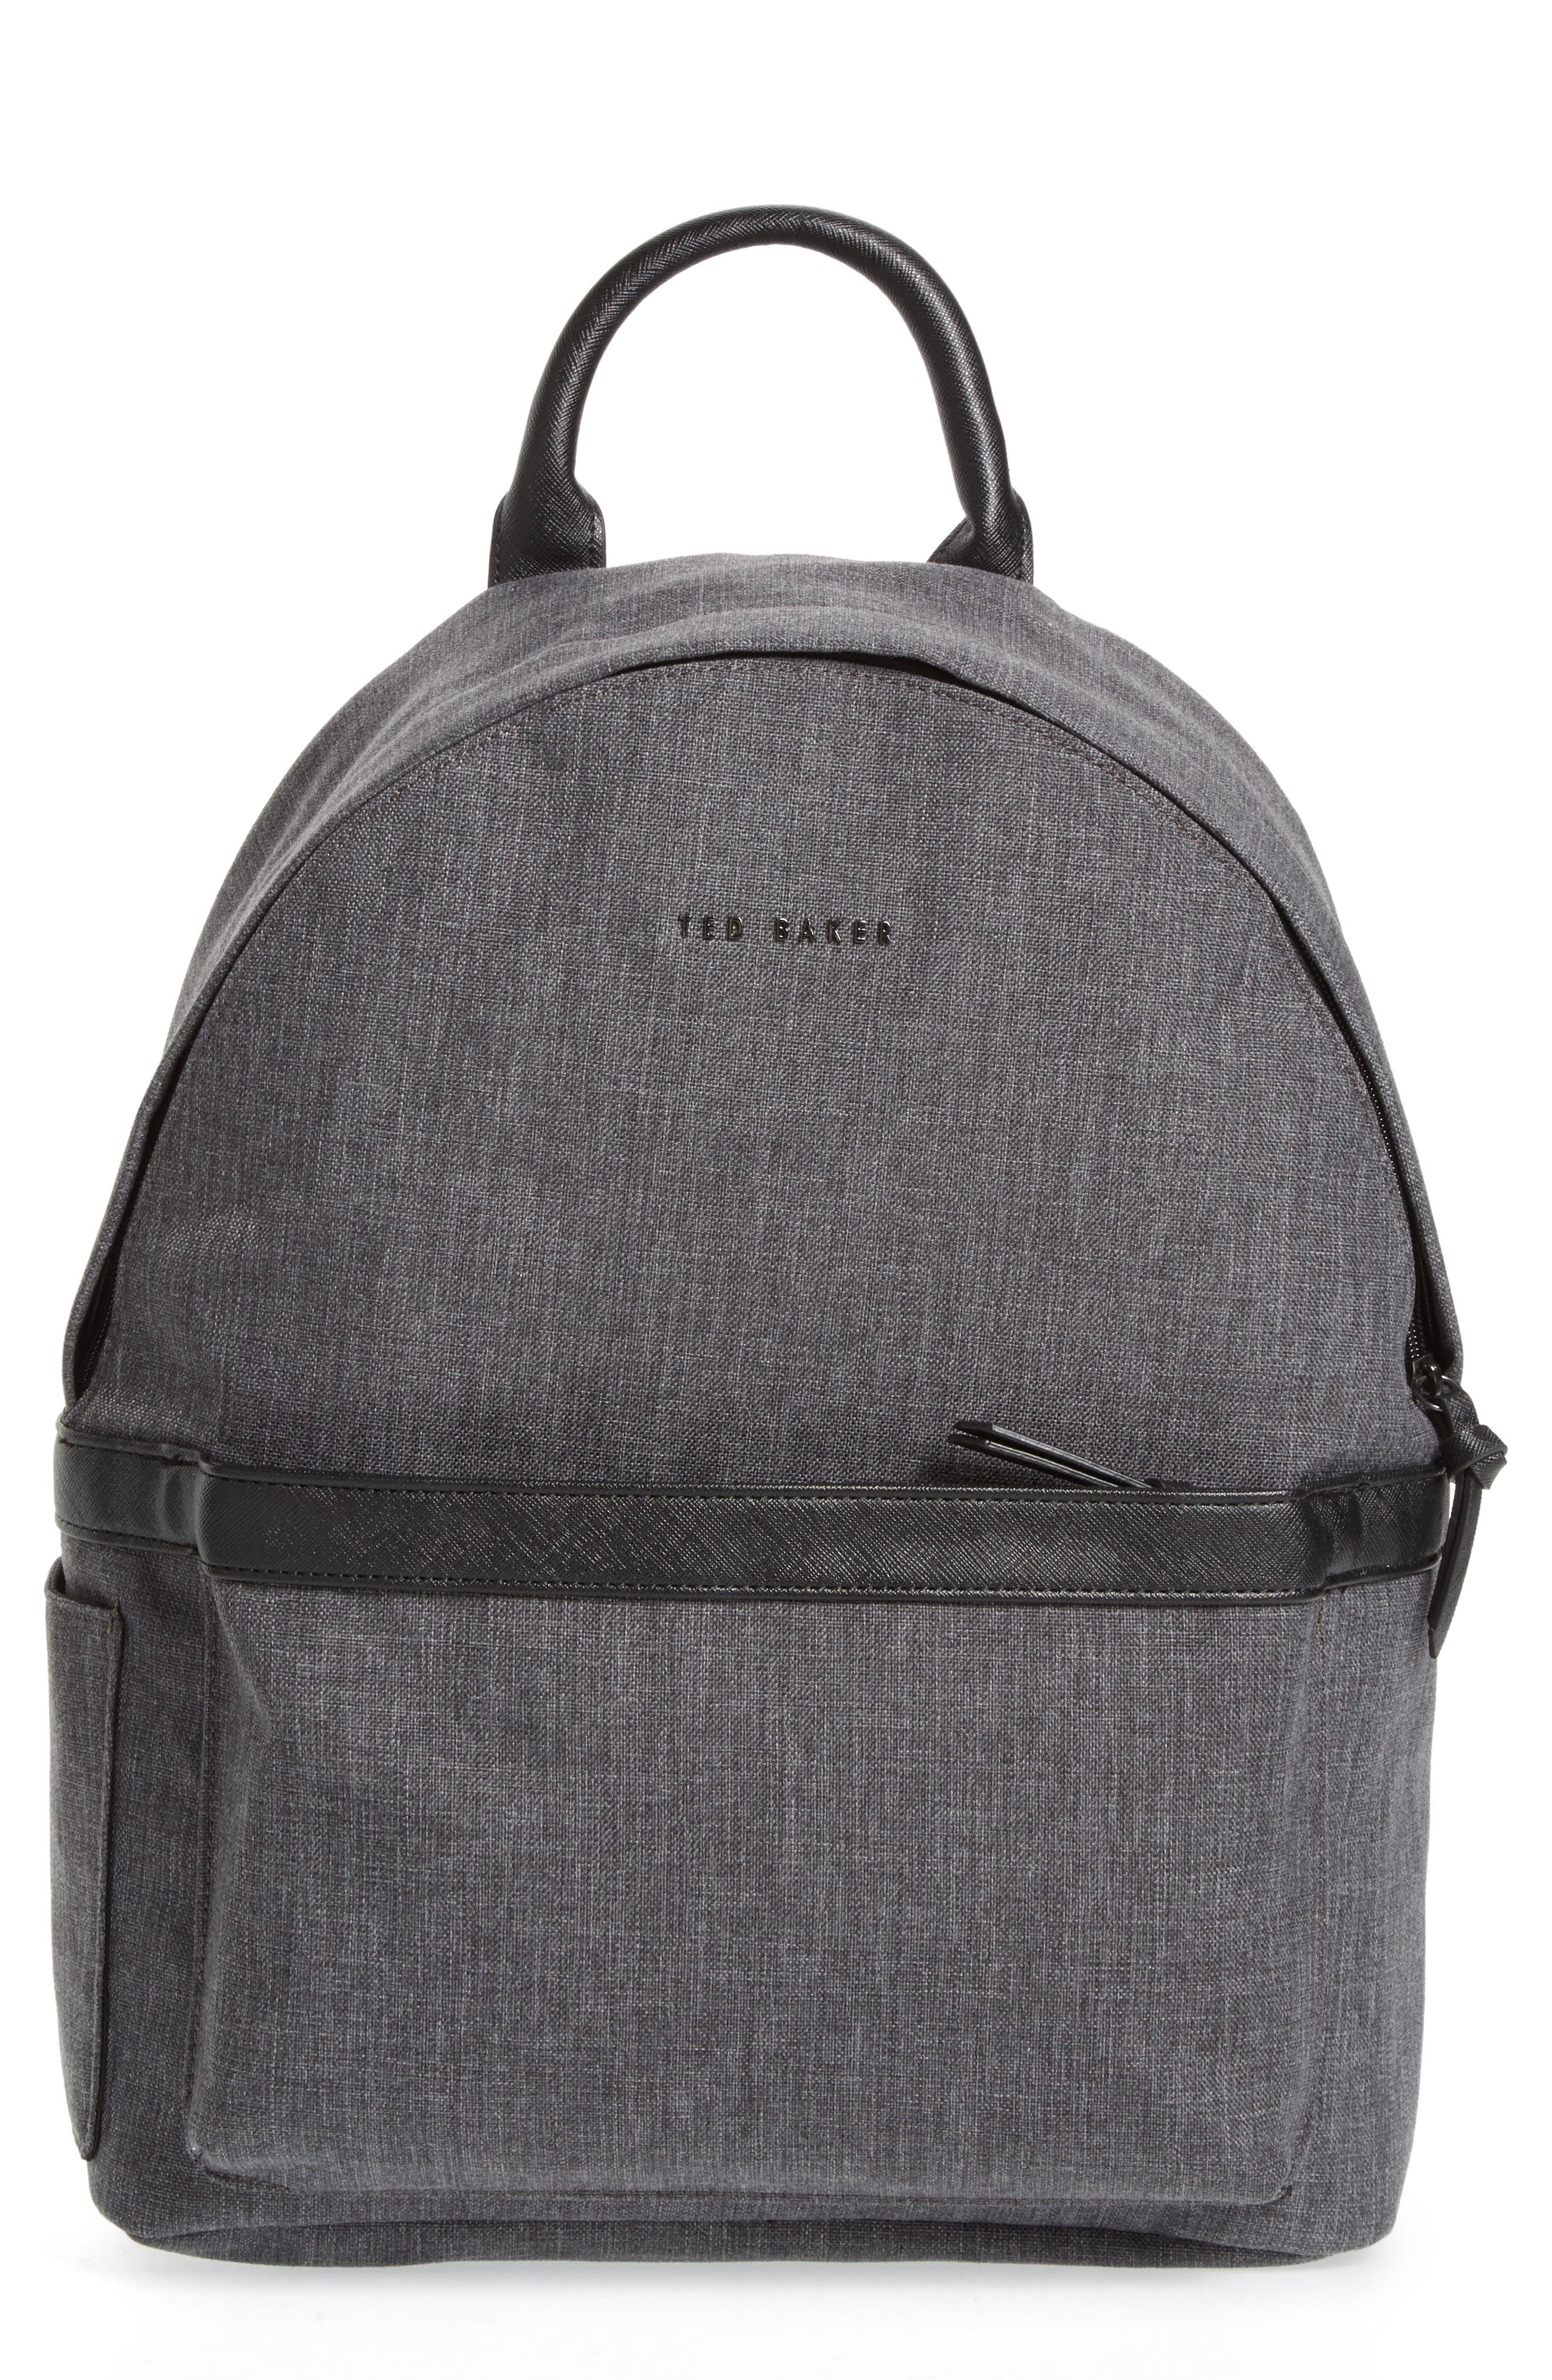 Lychee Backpack,                         Main,                         color, 010